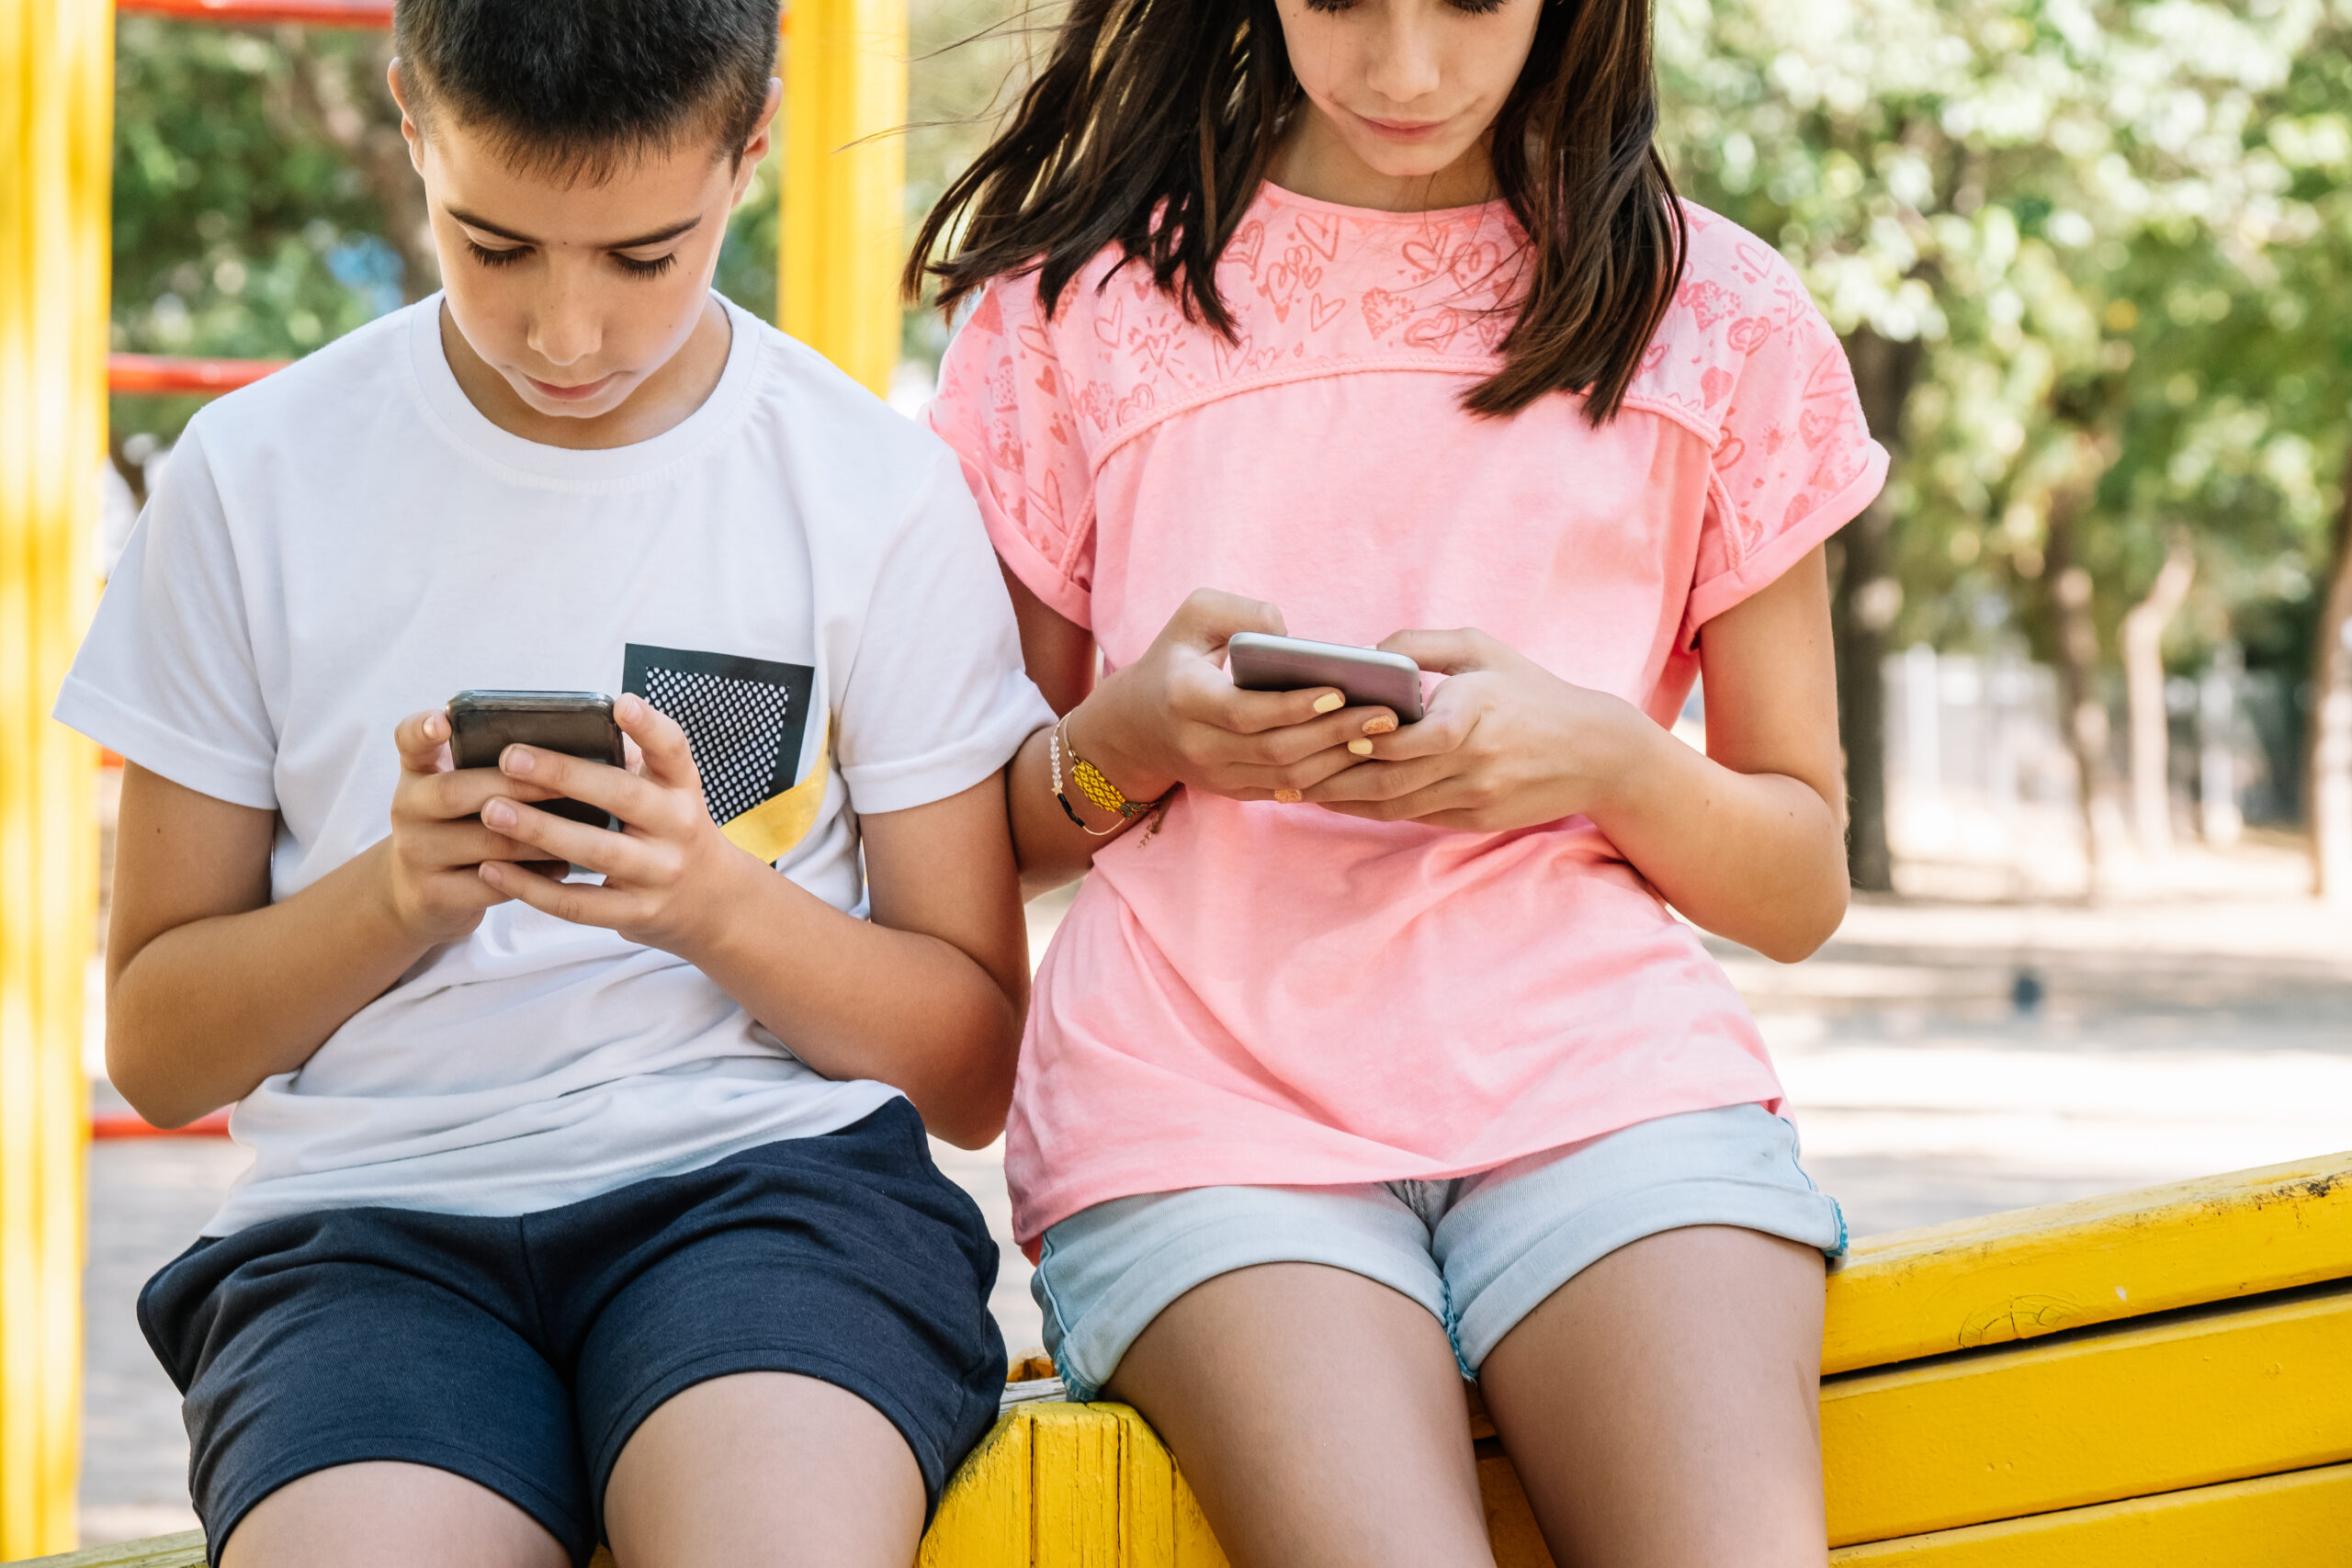 K12 schools need mobile device management services